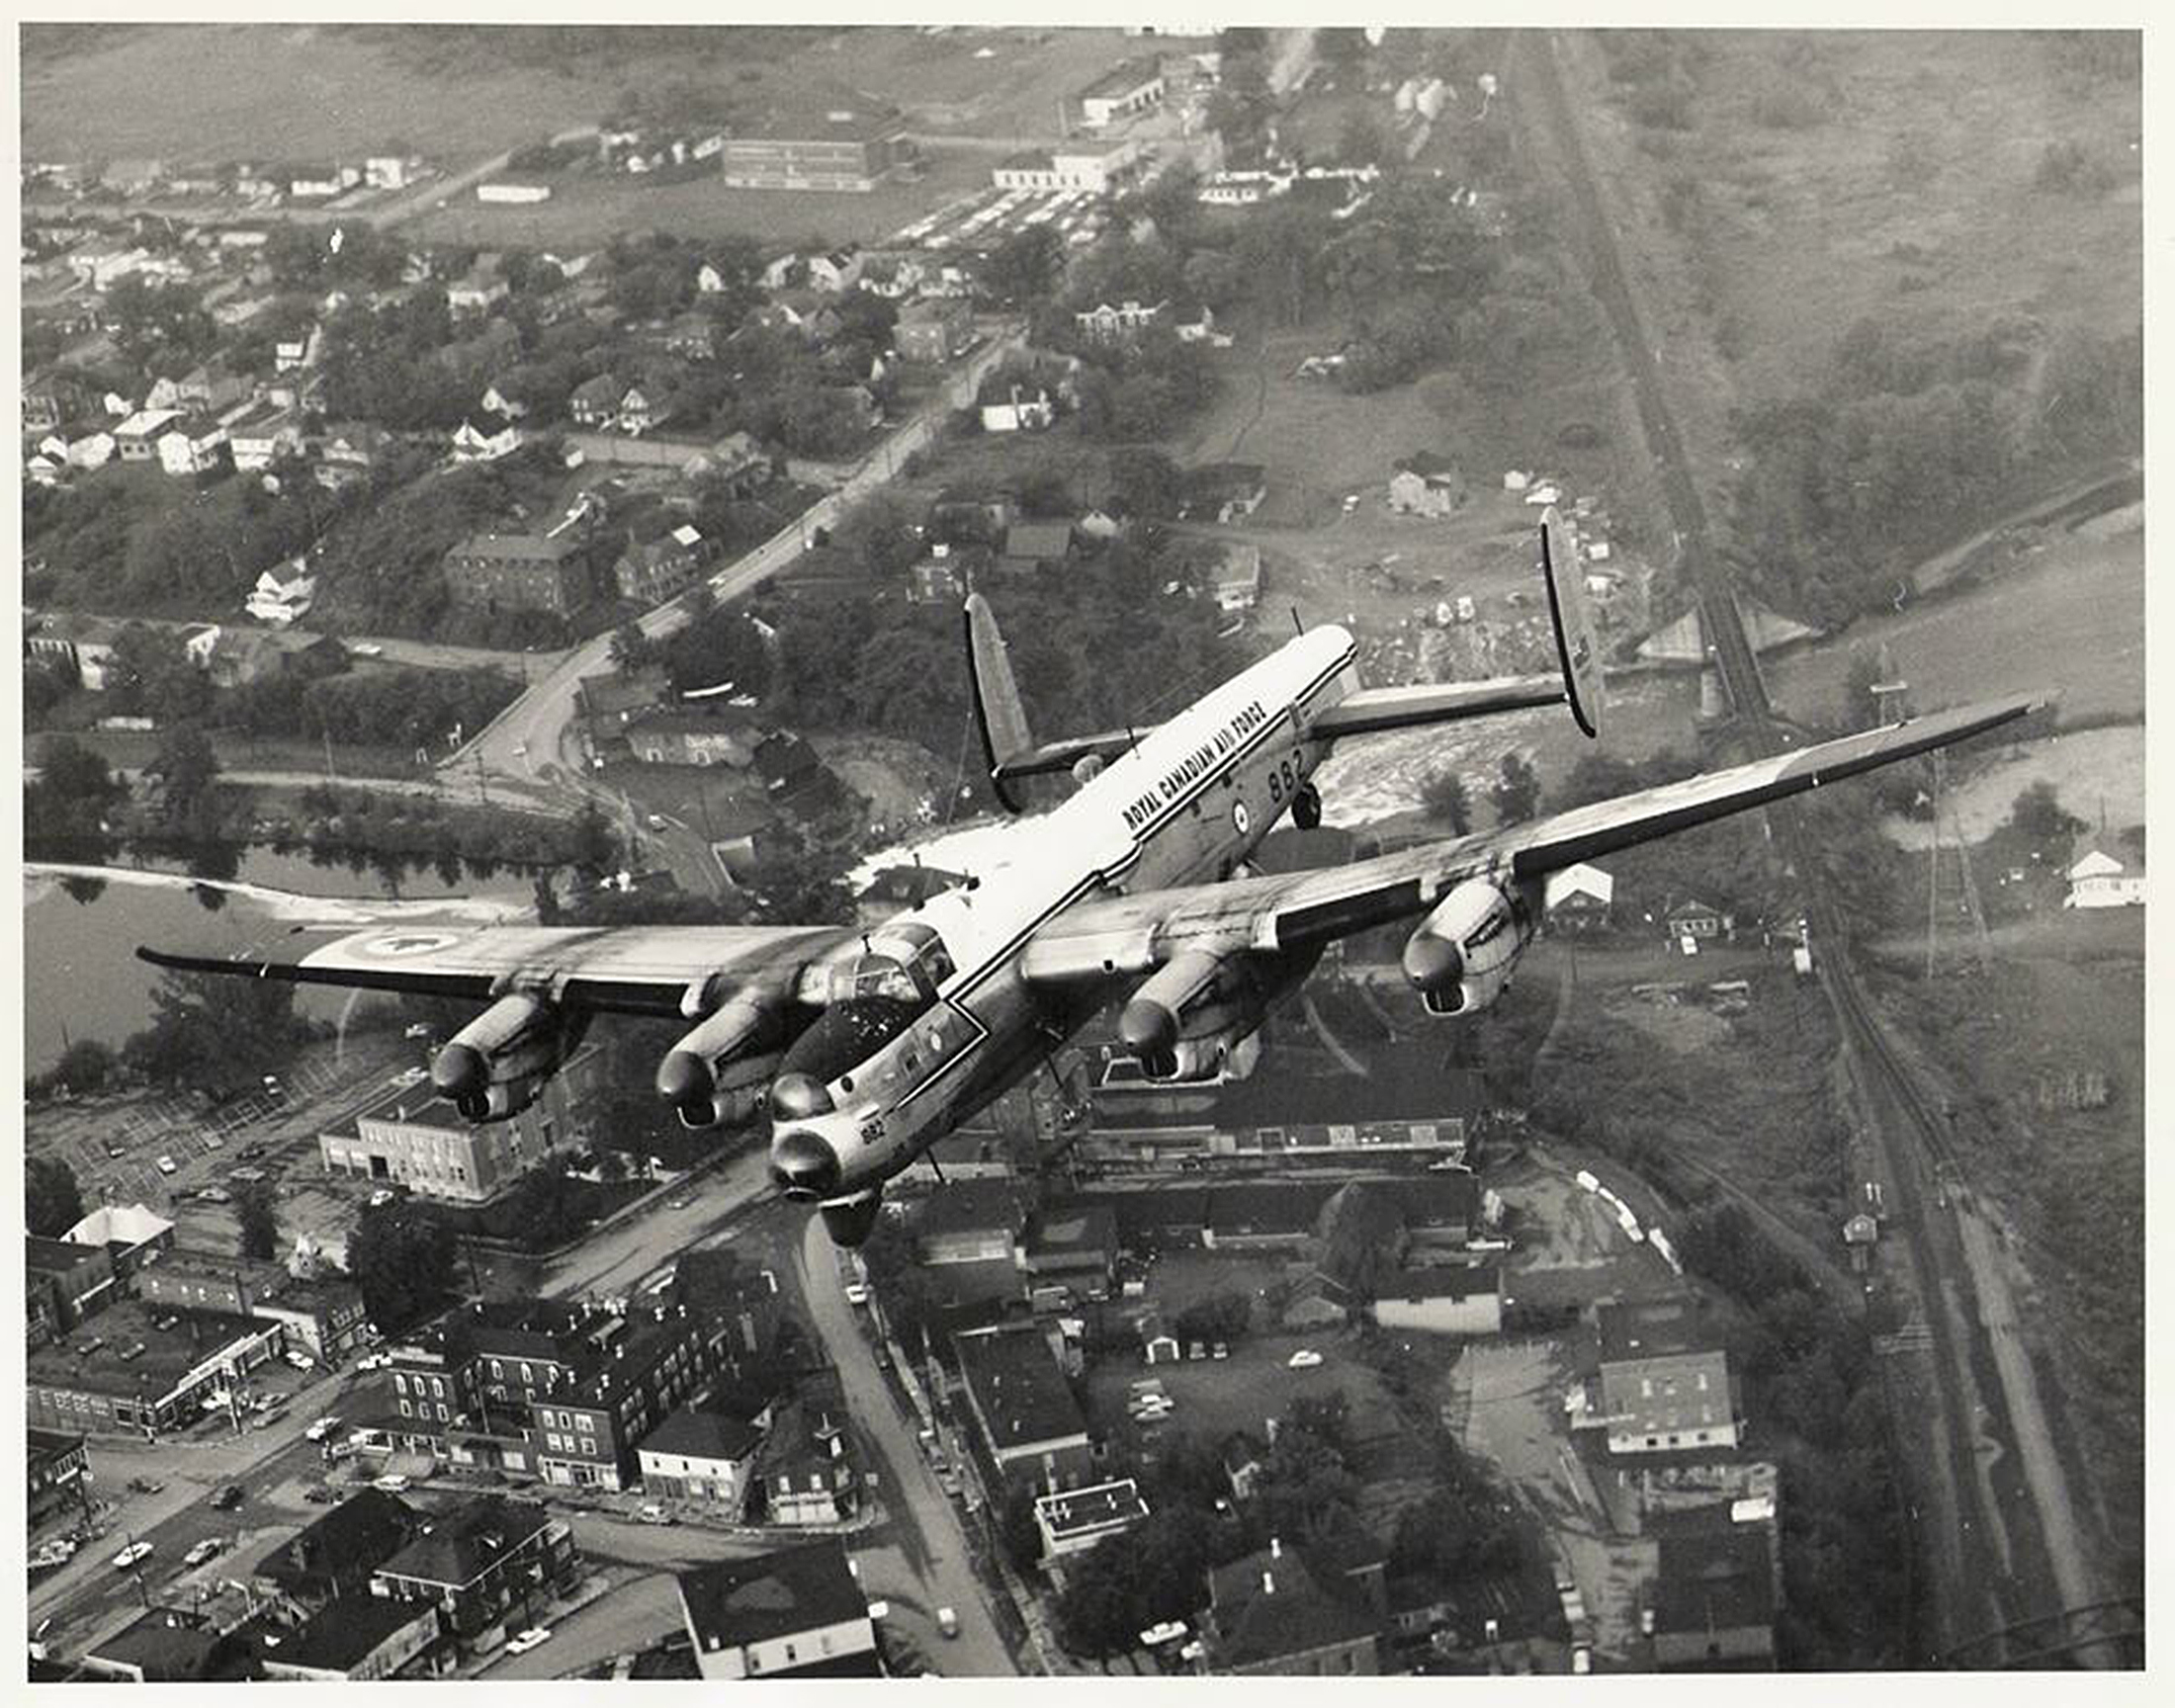 A black and white photo of a large, four-engine, propeller-driven aircraft flying over an urban area.